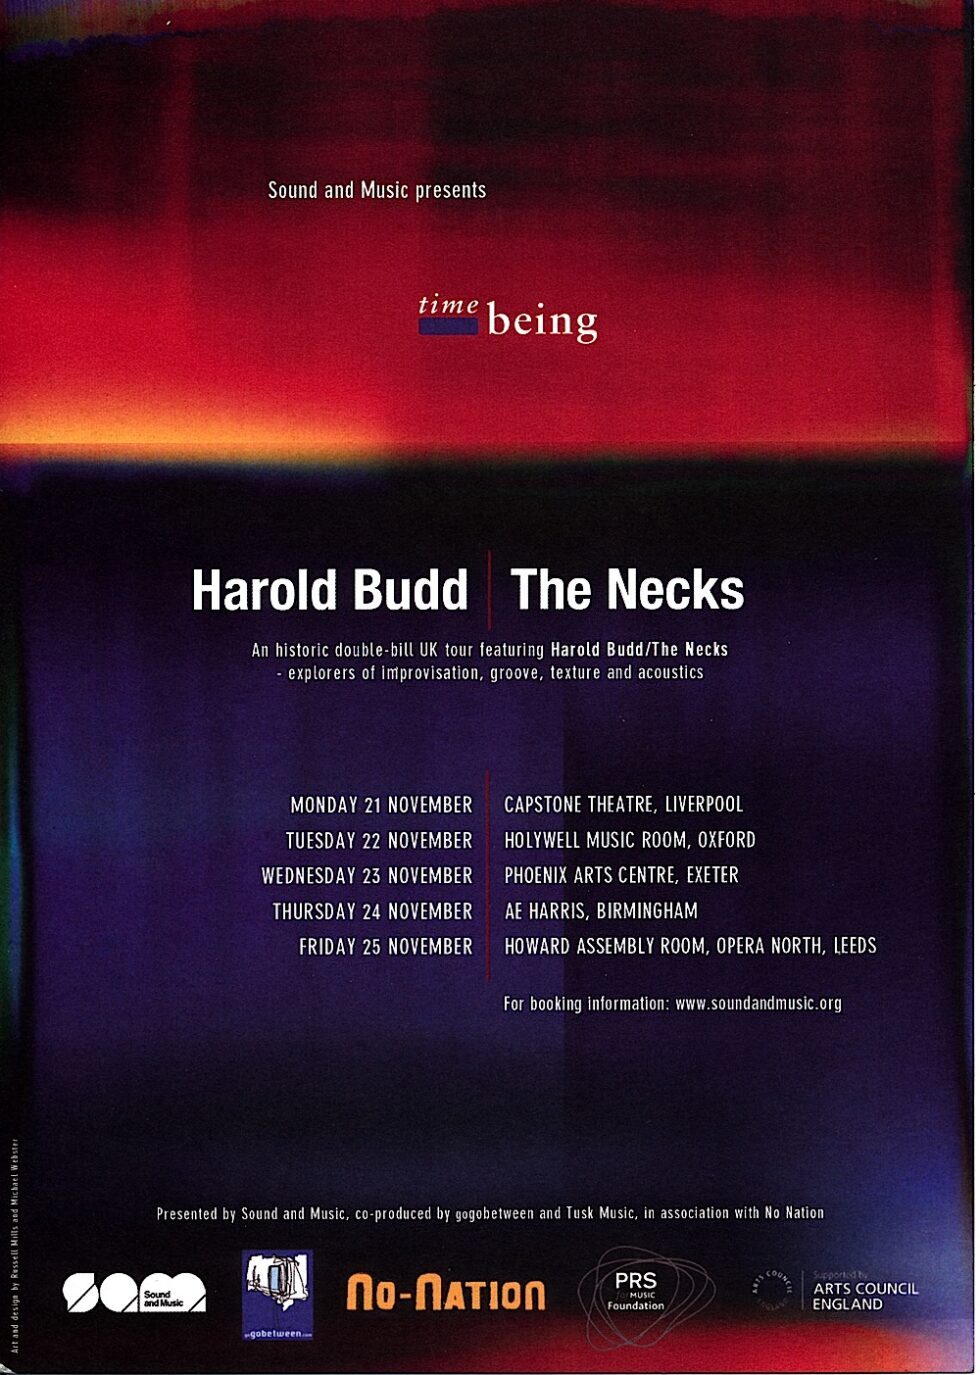 Harold-Budd-The-Necks-Time-Being-poster-2011